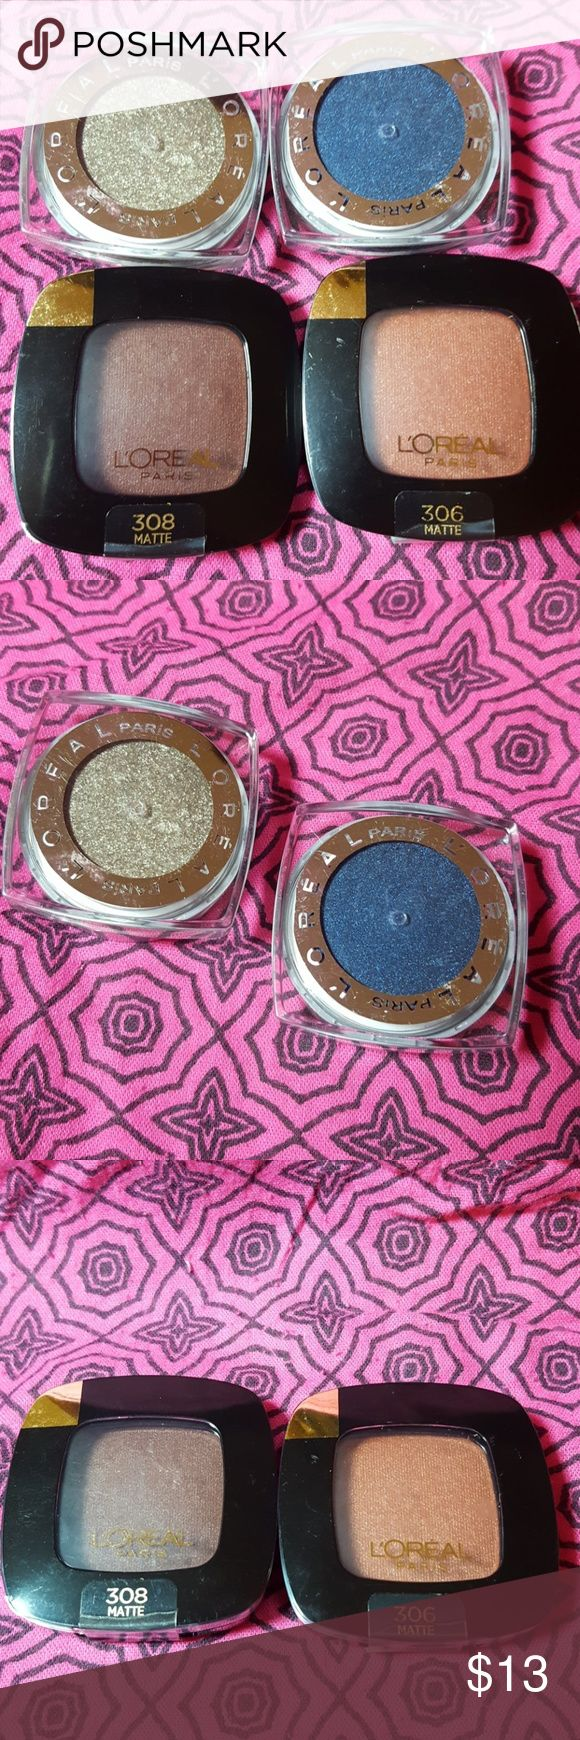 Lot of 4 L'oreal Eyeshadows Lot of 4 L'oreal Eyeshadows. Colour Riche Matte-Ison Garden, Colour Riche Acro-Matte, Infallible Gilded Envy, And Infallible Midnight Blue. L'Oreal Makeup Eyeshadow